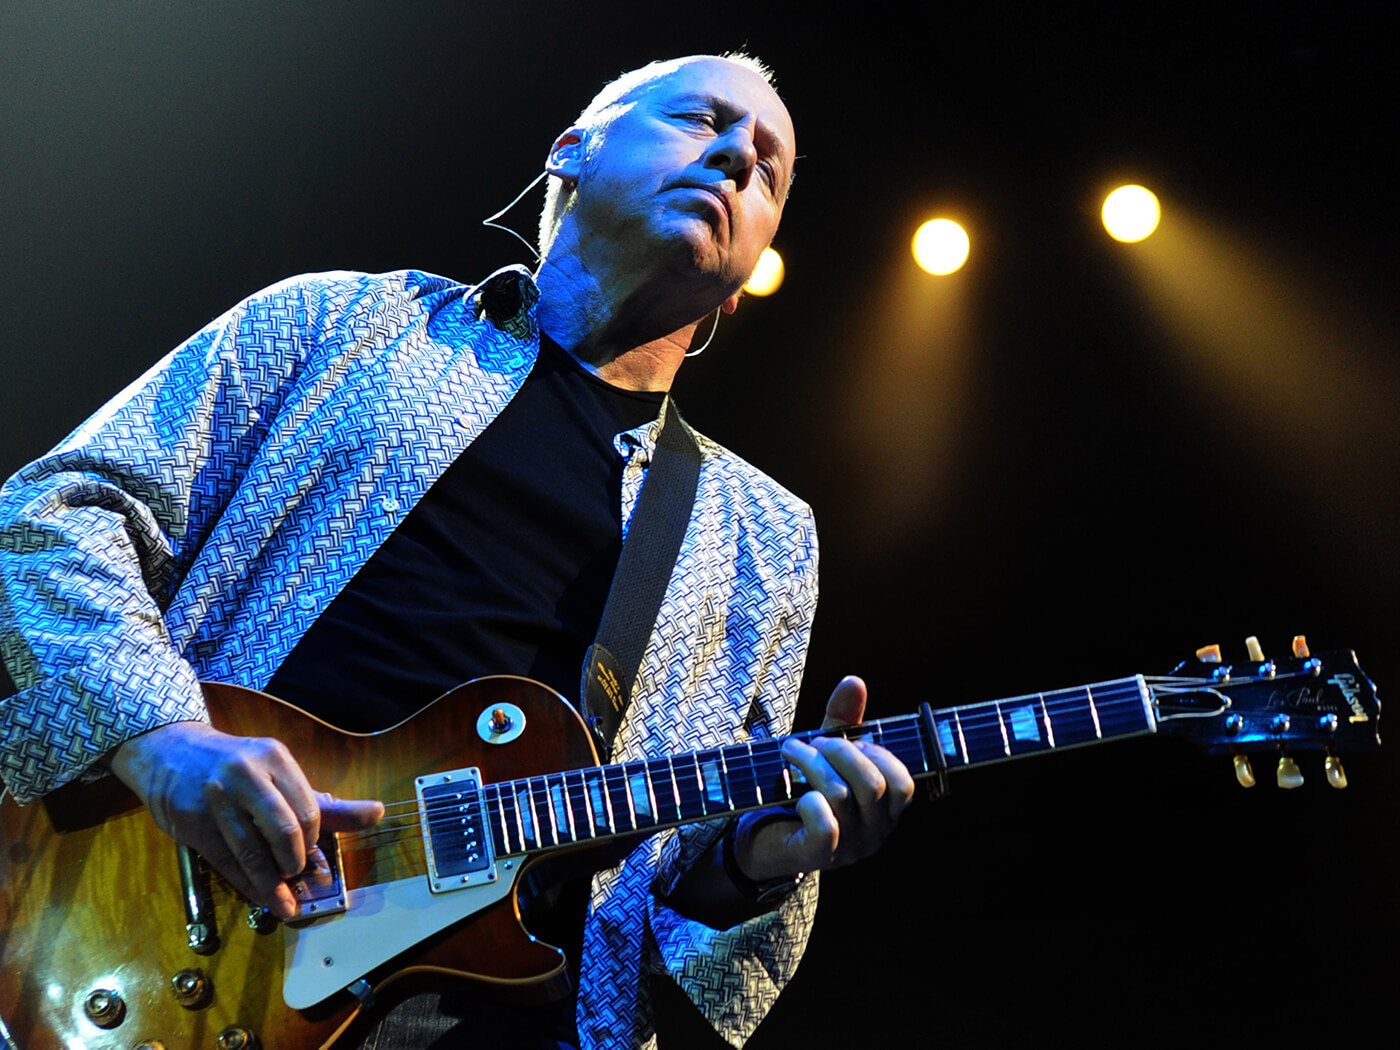 Mark Knopfler playing Gibson Les Paul